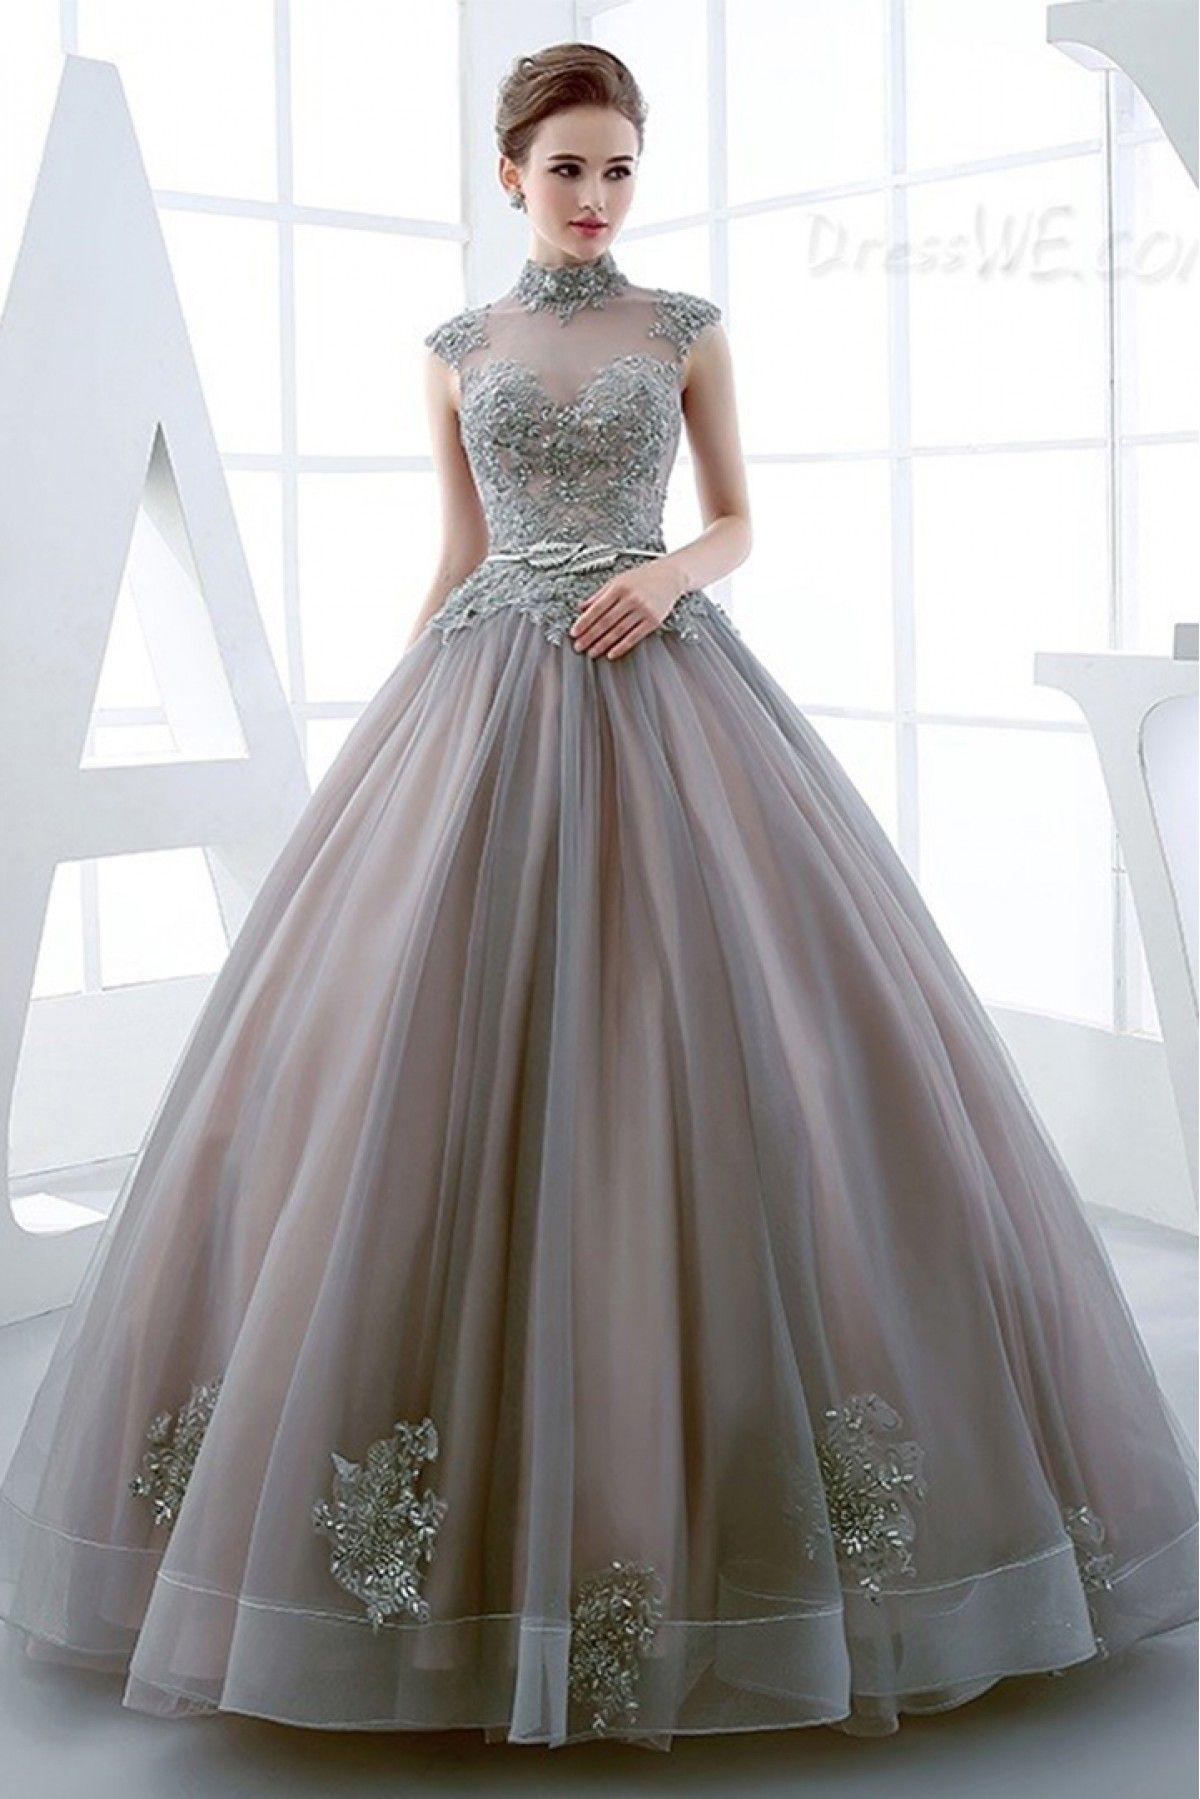 355c29756137 Youdesign French Crepe Organza Gown In Grey Colour Size Upto 66 ...